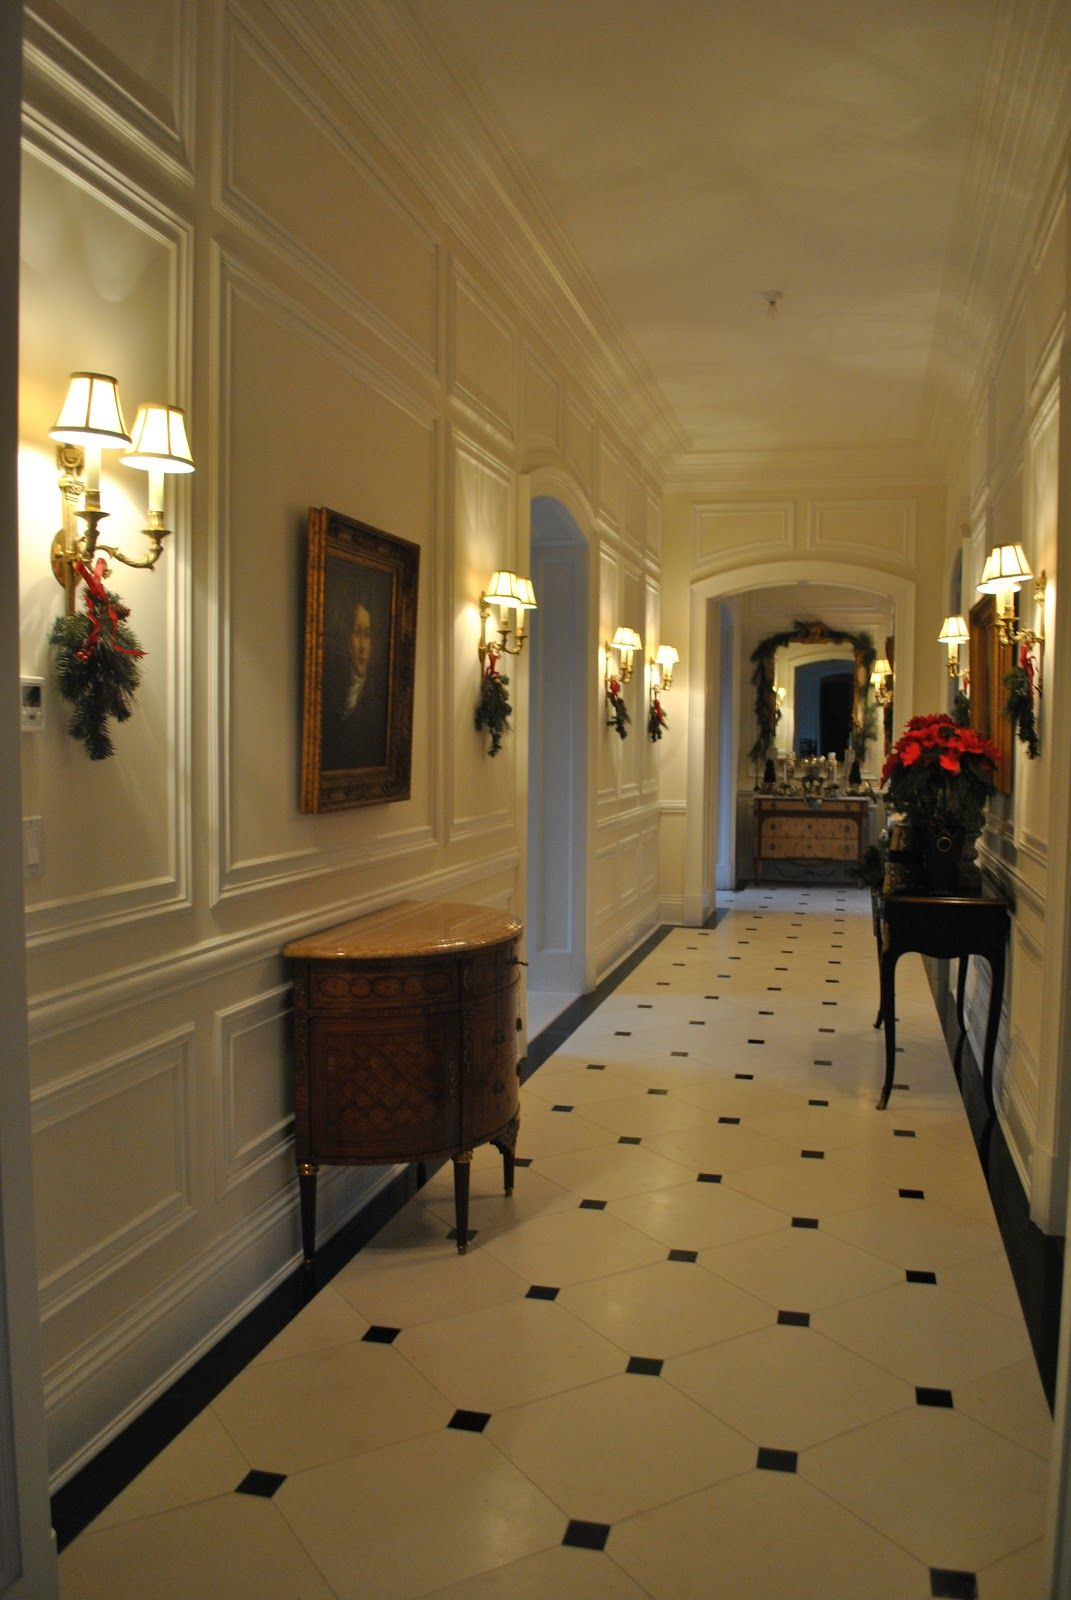 Great black and white marble flooring.  Very French-looking.